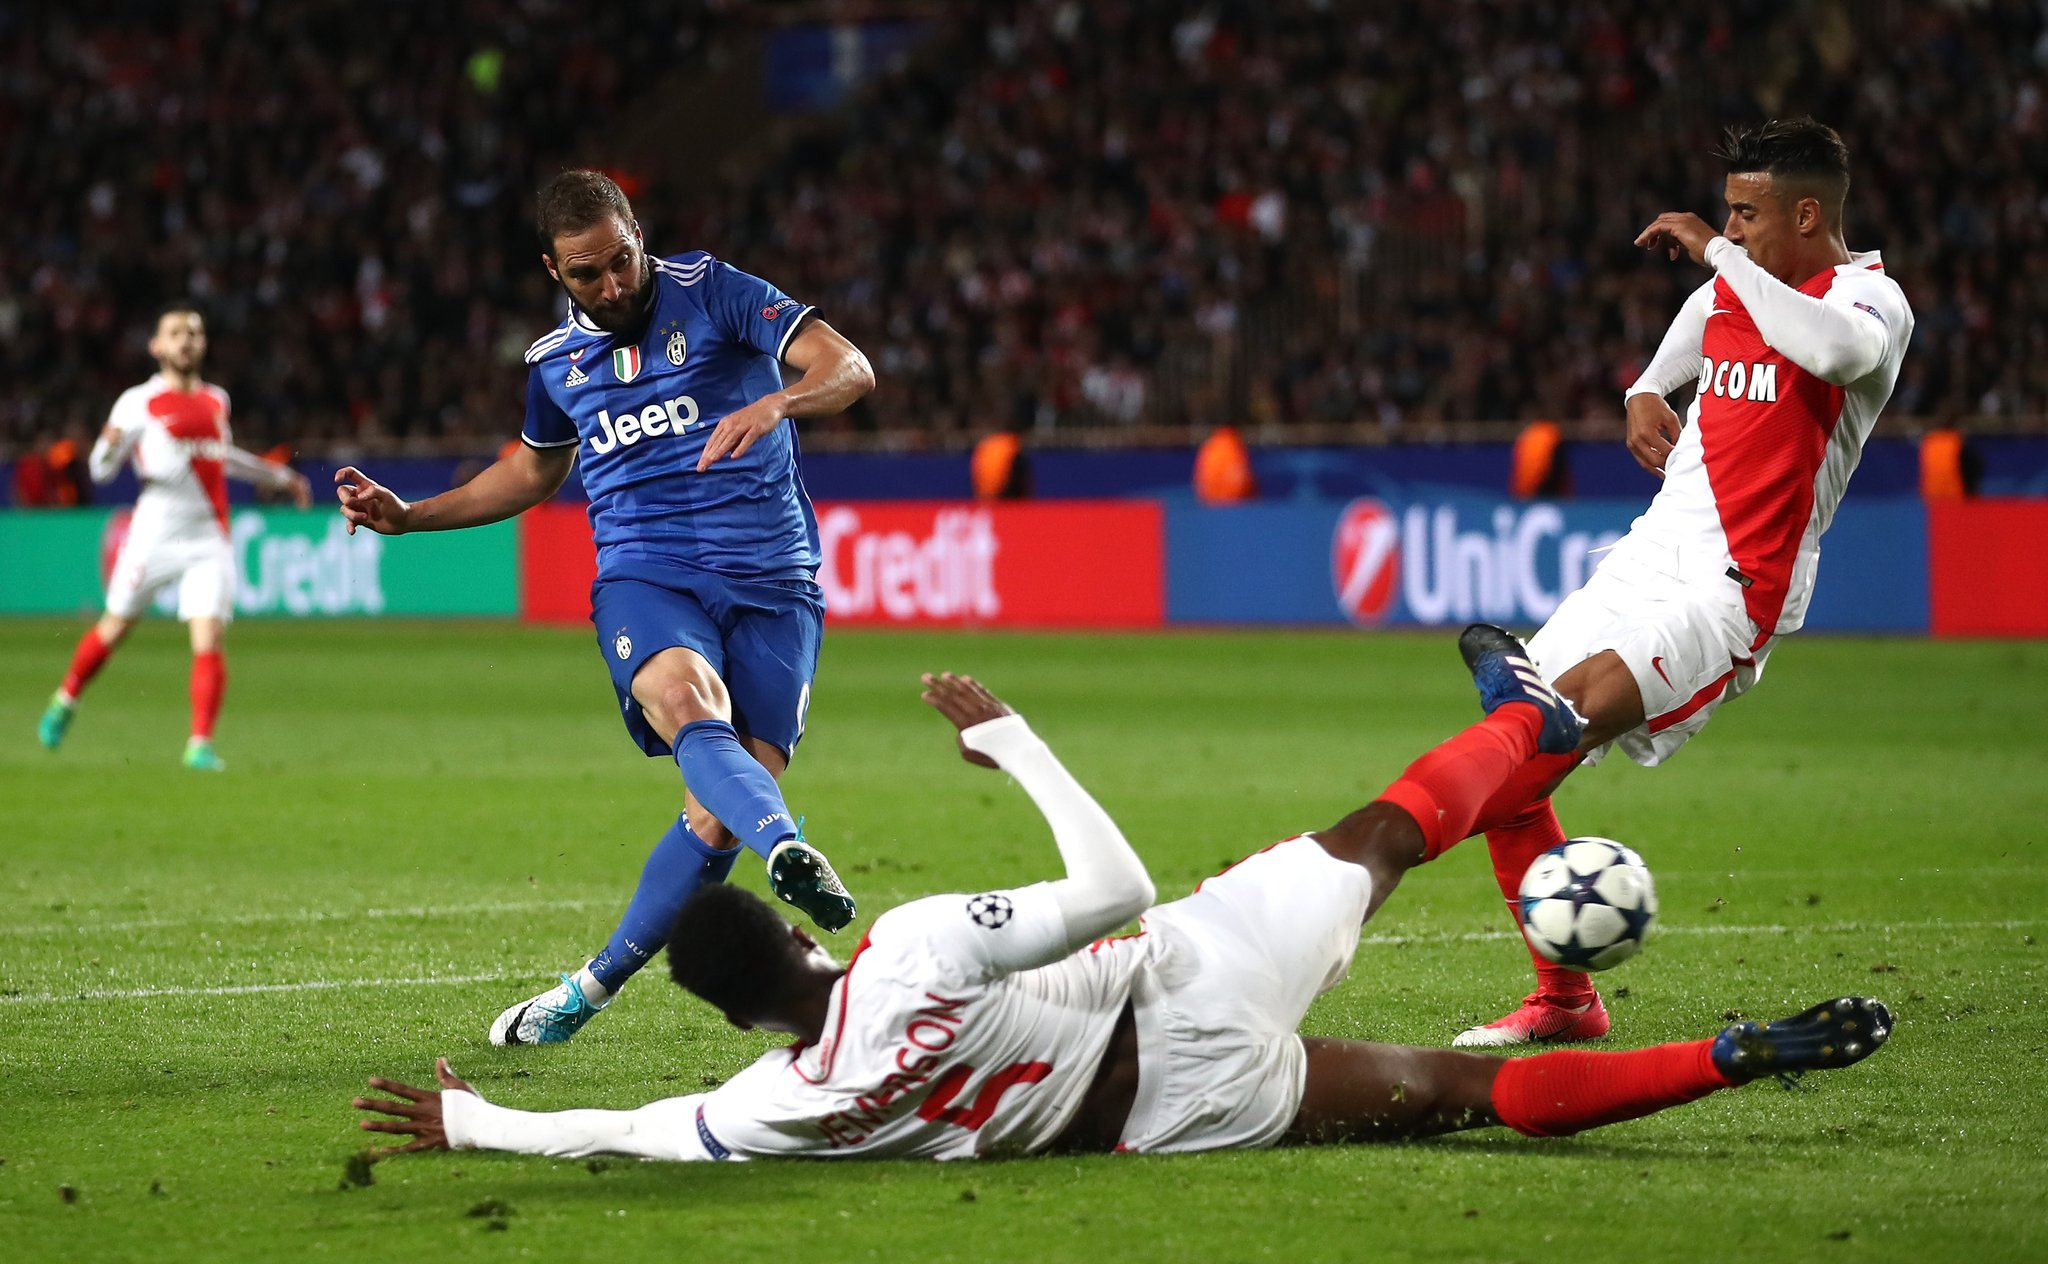 Higuain Bags Brace Vs Monaco As Juventus Near UCL Final